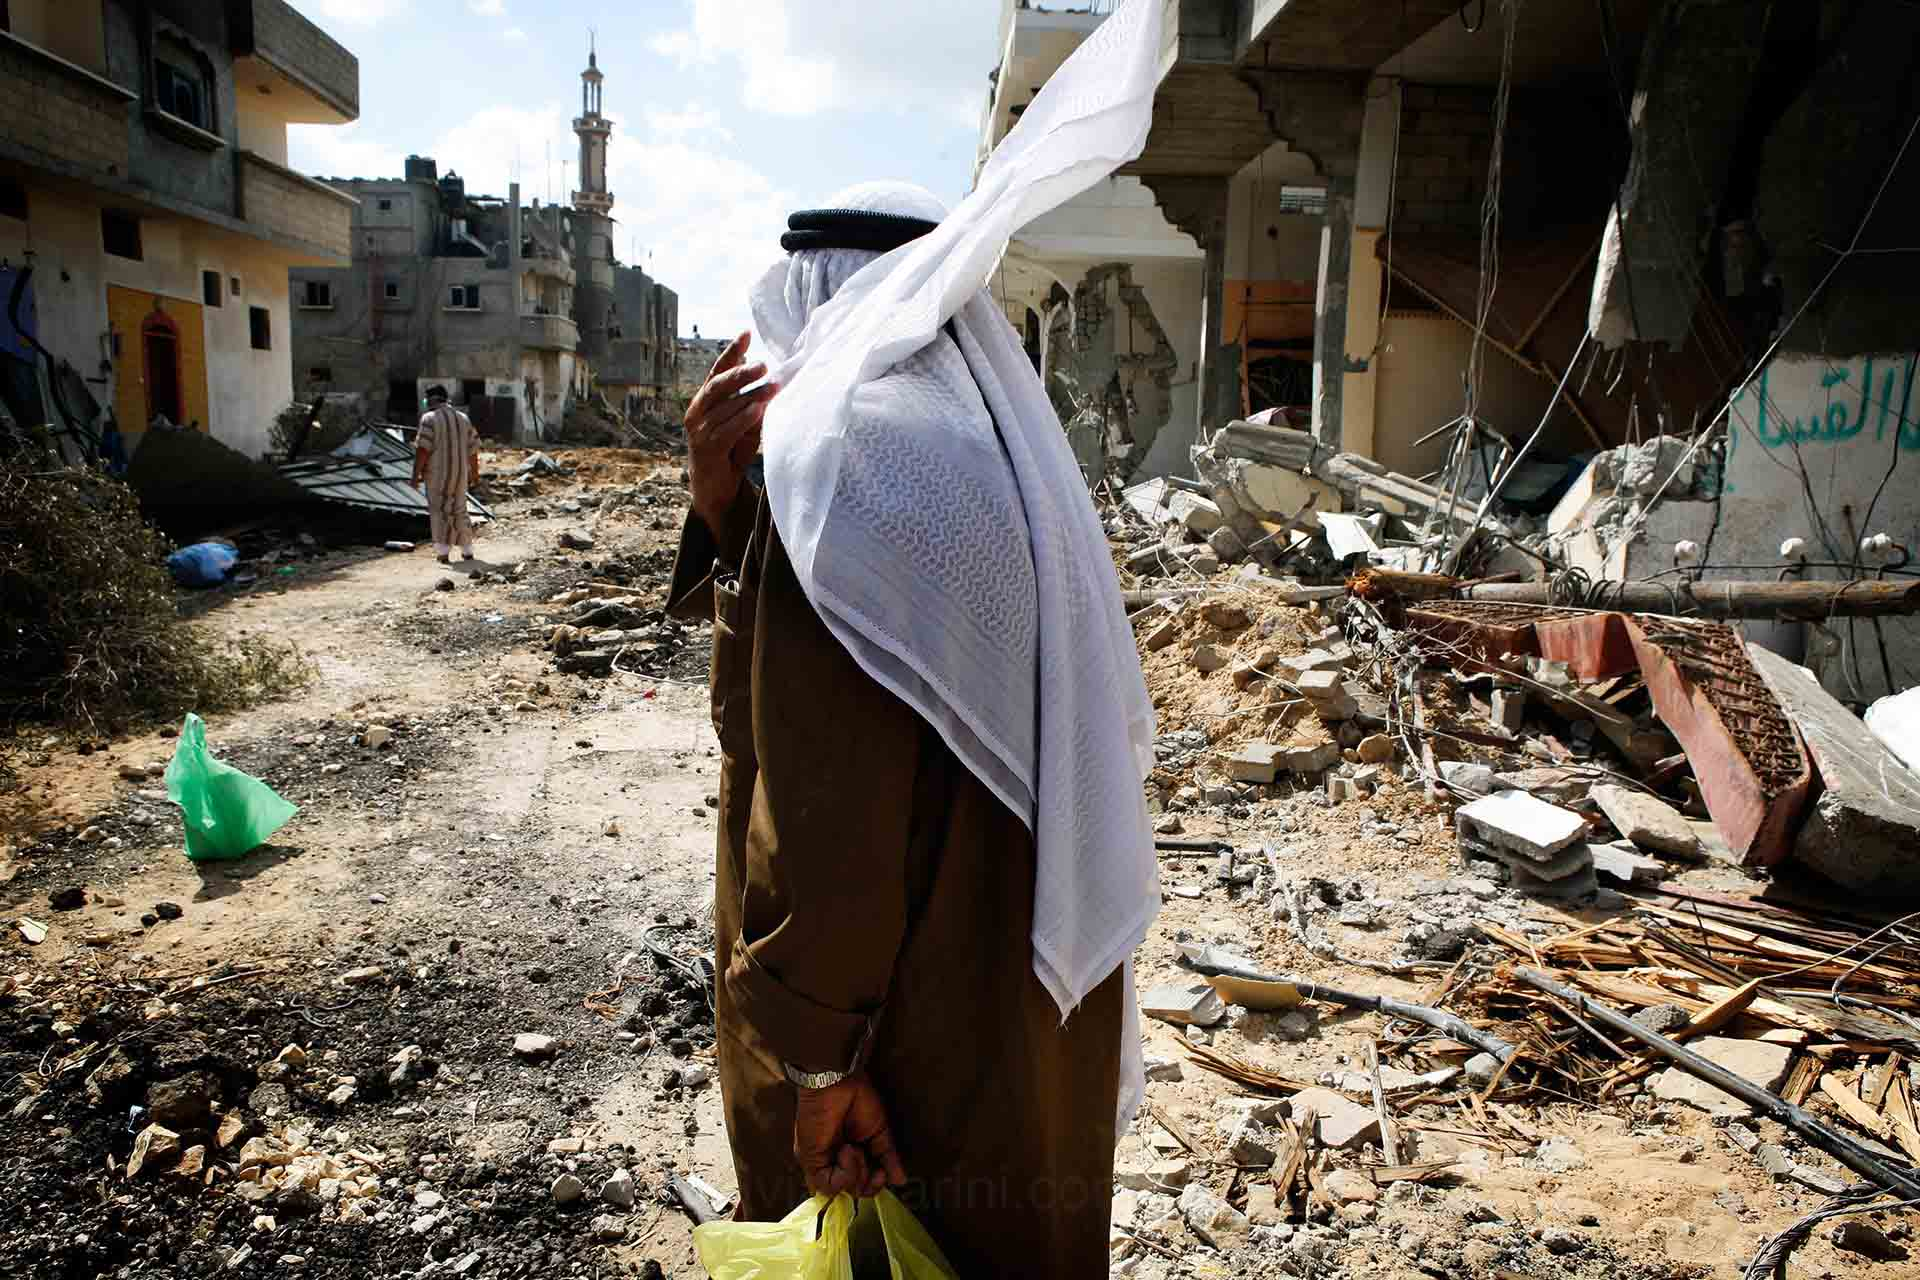 An elderly man walks through the rubble in Khouza. August 2014